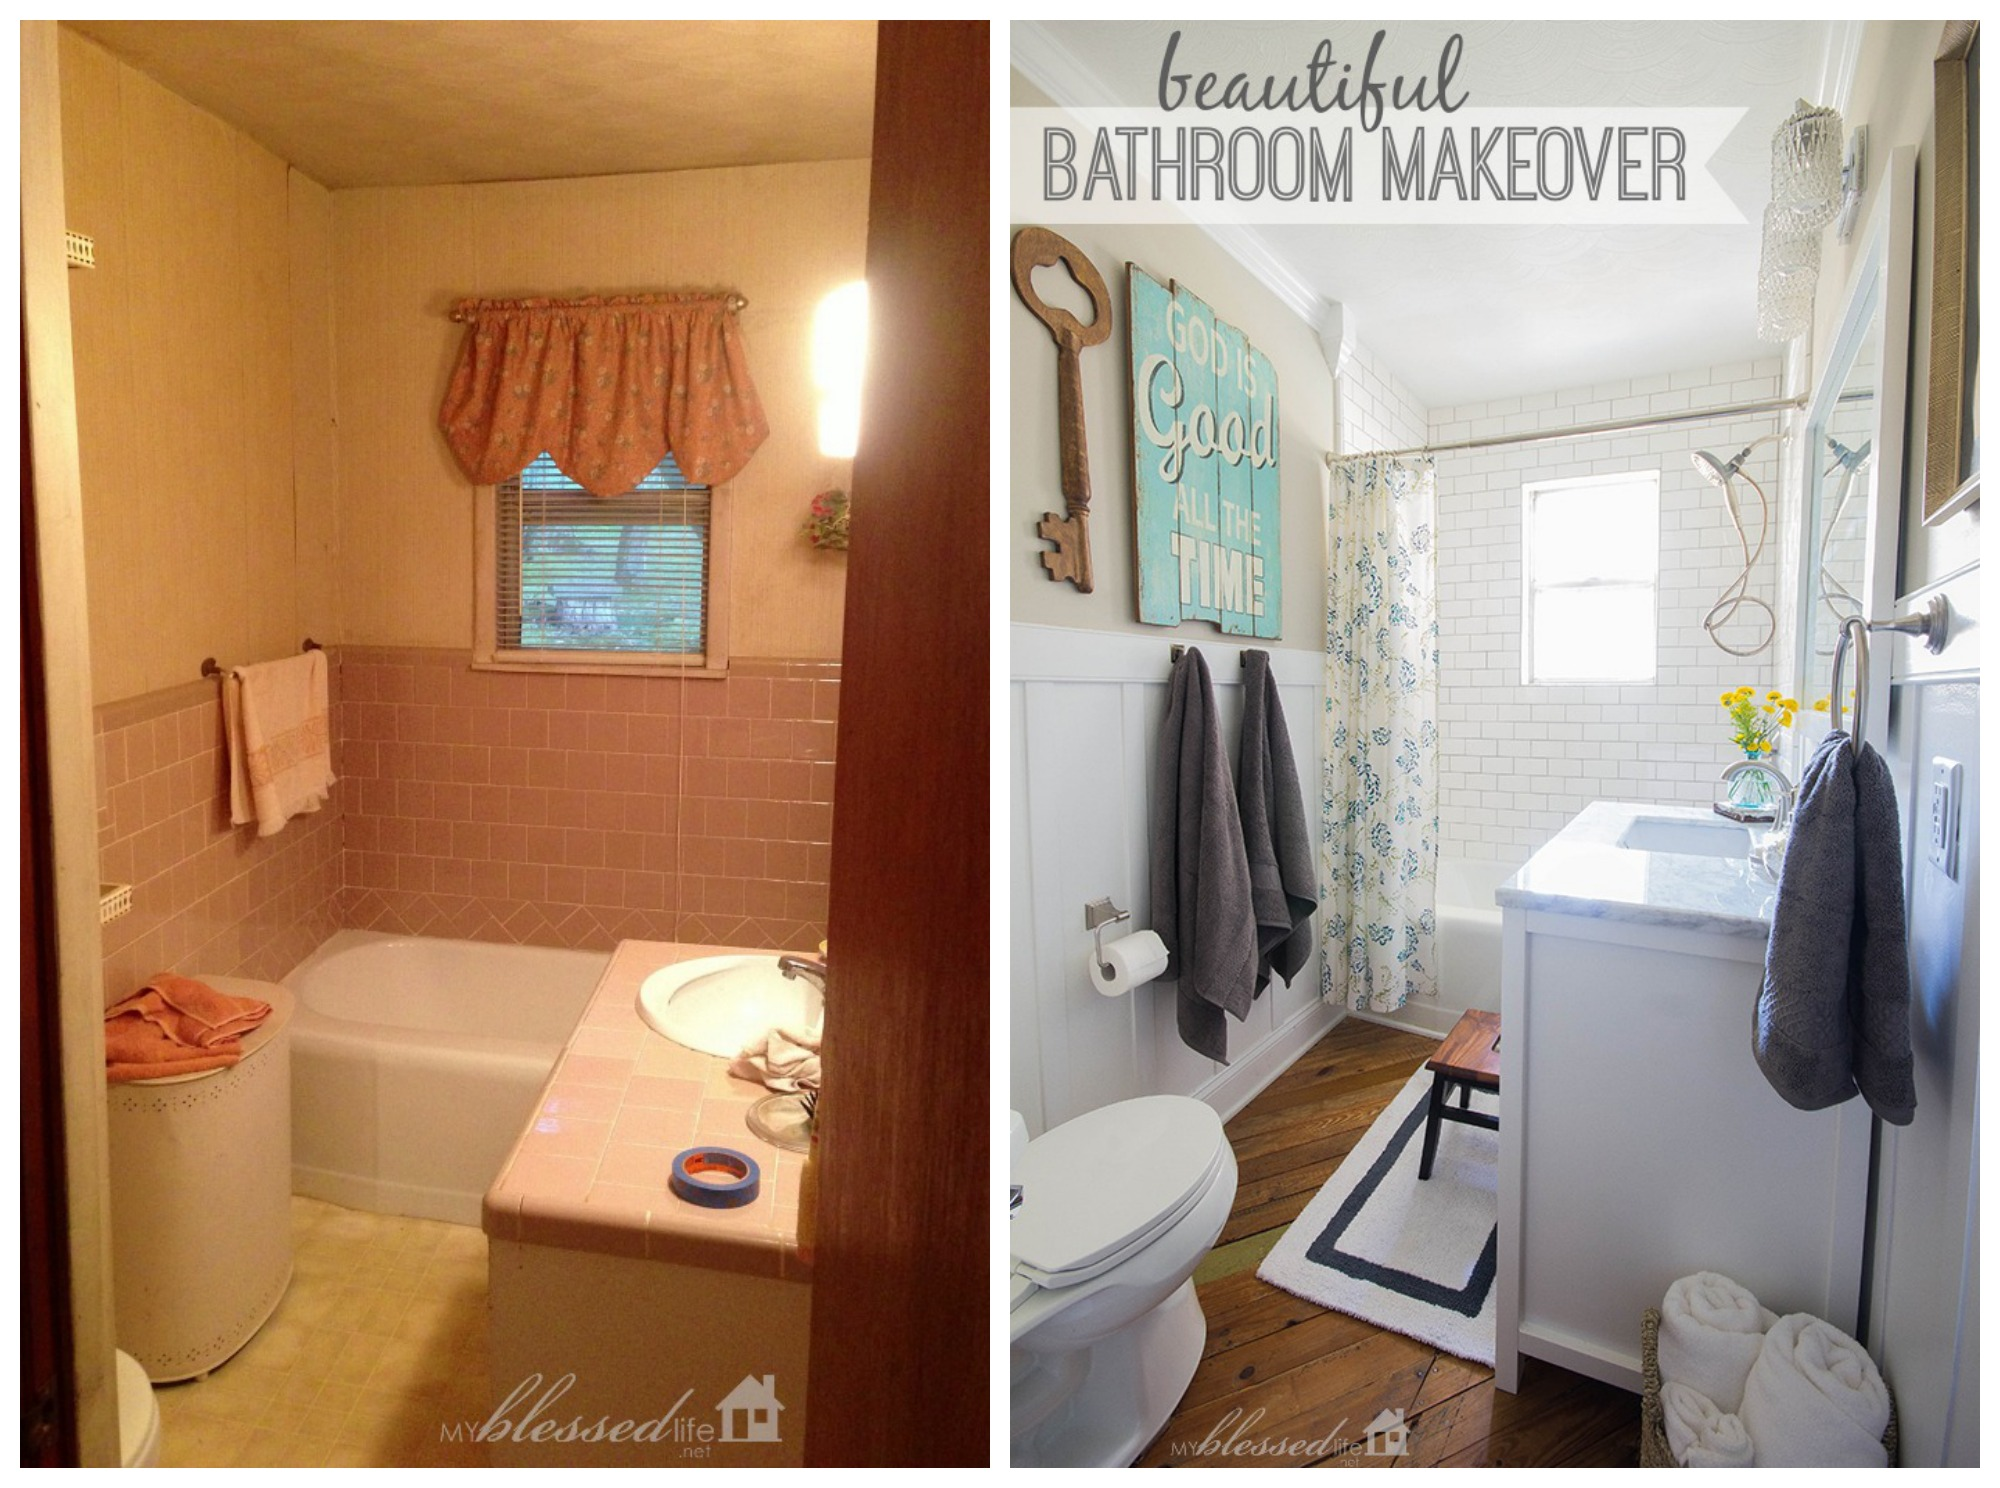 Cheap bathroom remodel before and after - Bathroom Renovation Before After